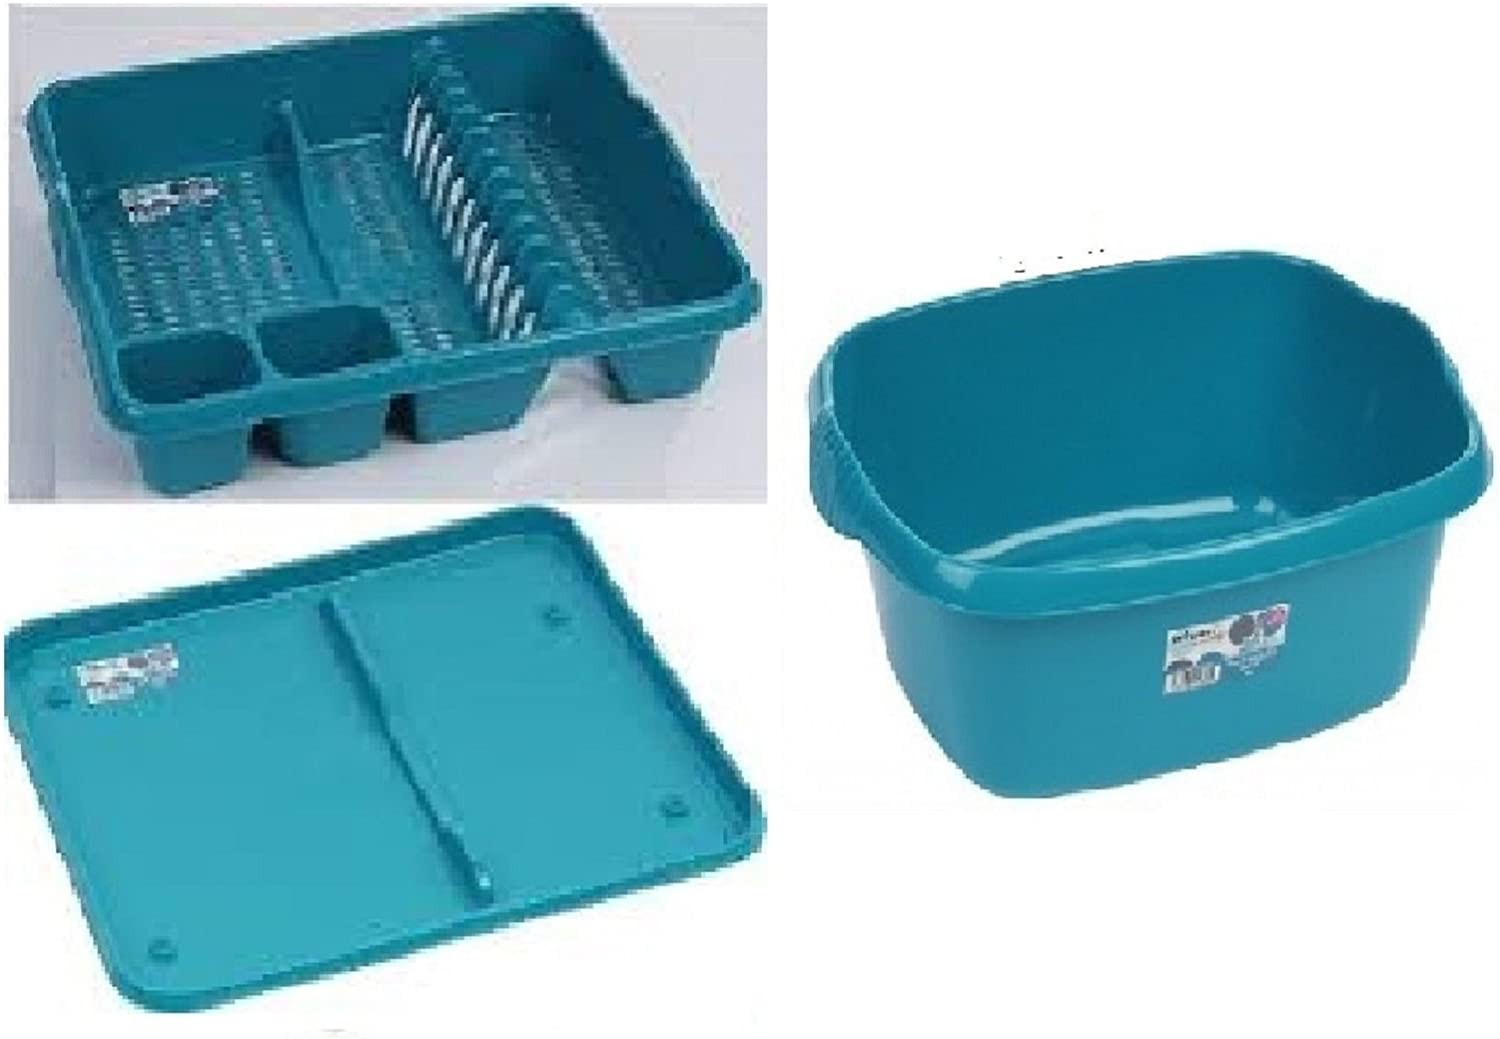 PLASTIC TEAL DISH DRAINER RACK WITH TRAY RECTANGULAR WASHING UP